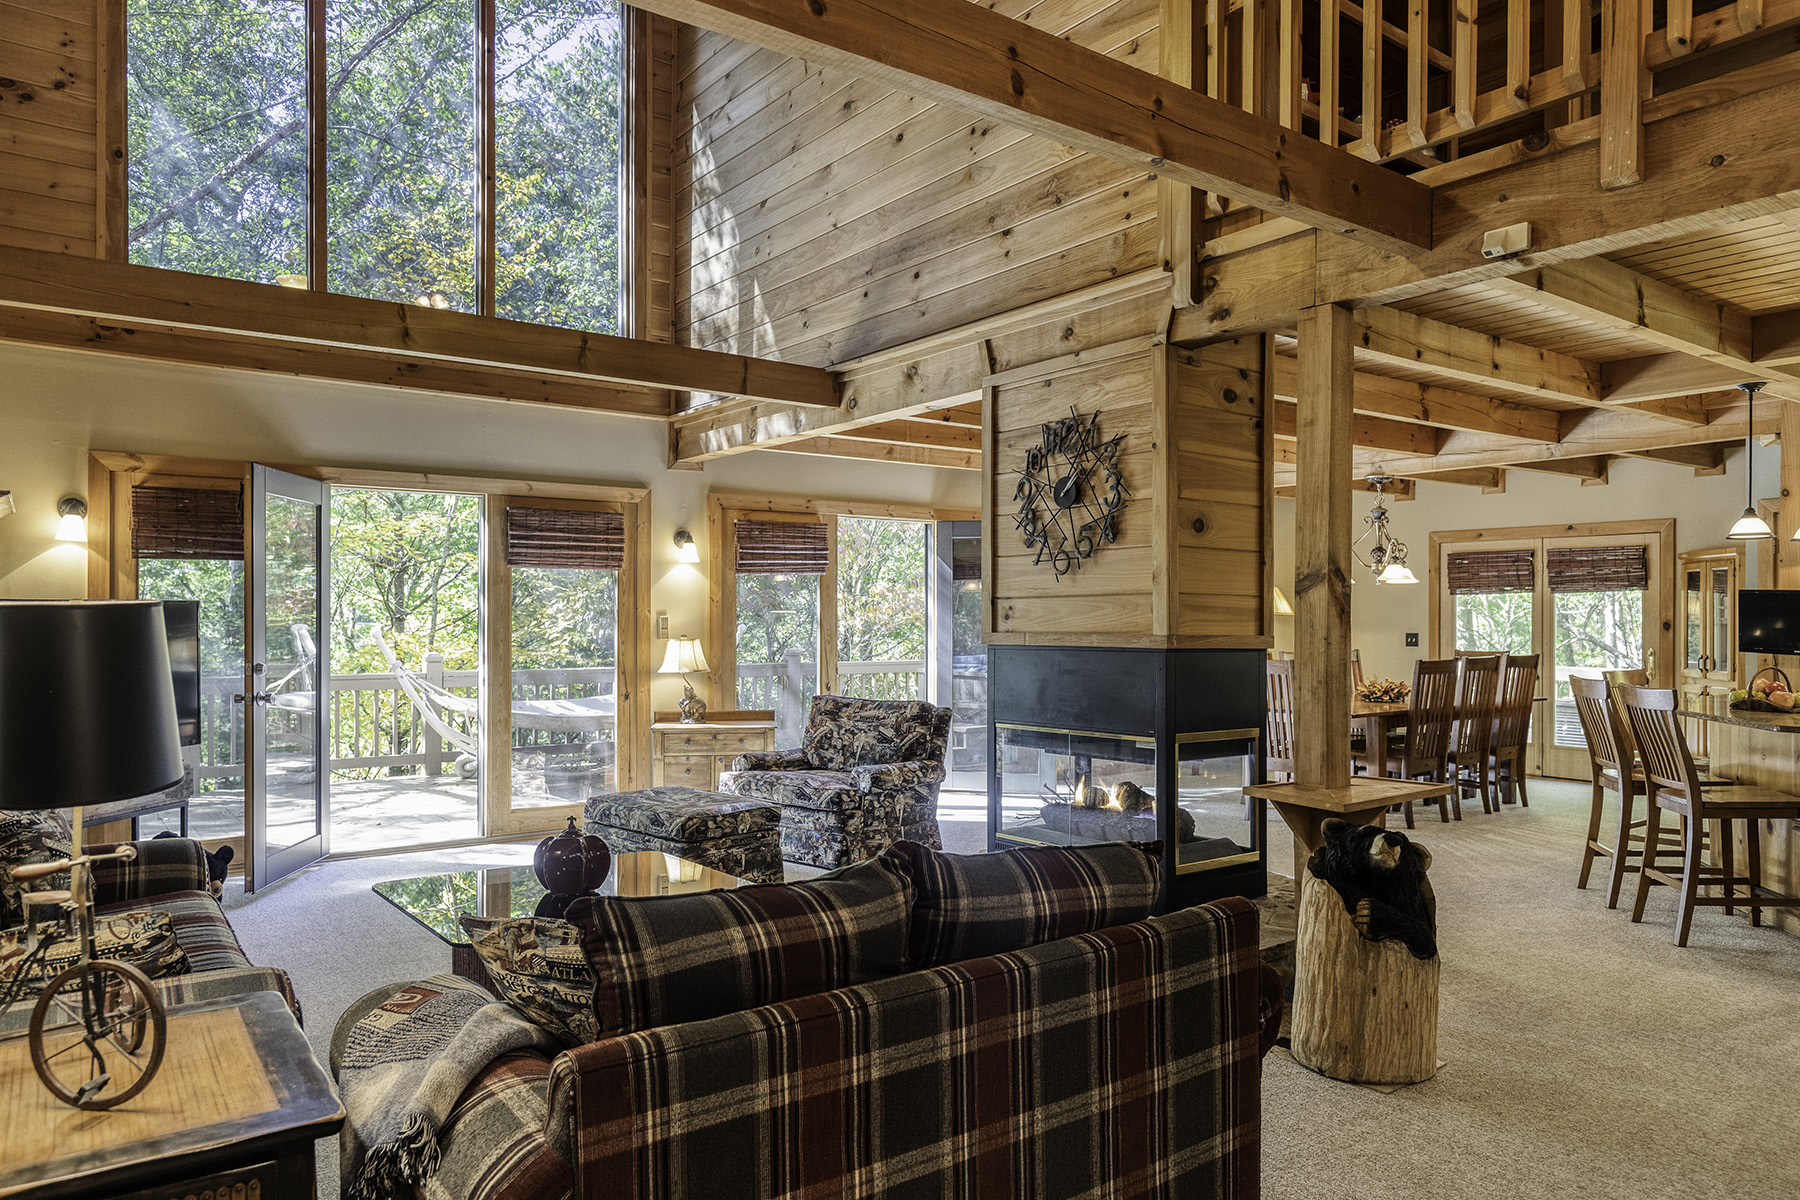 Additional photo for property listing at The Great Escape Cabin in Ellijay 392 Skyview Dr, Ellijay, Georgia 30536 Hoa Kỳ